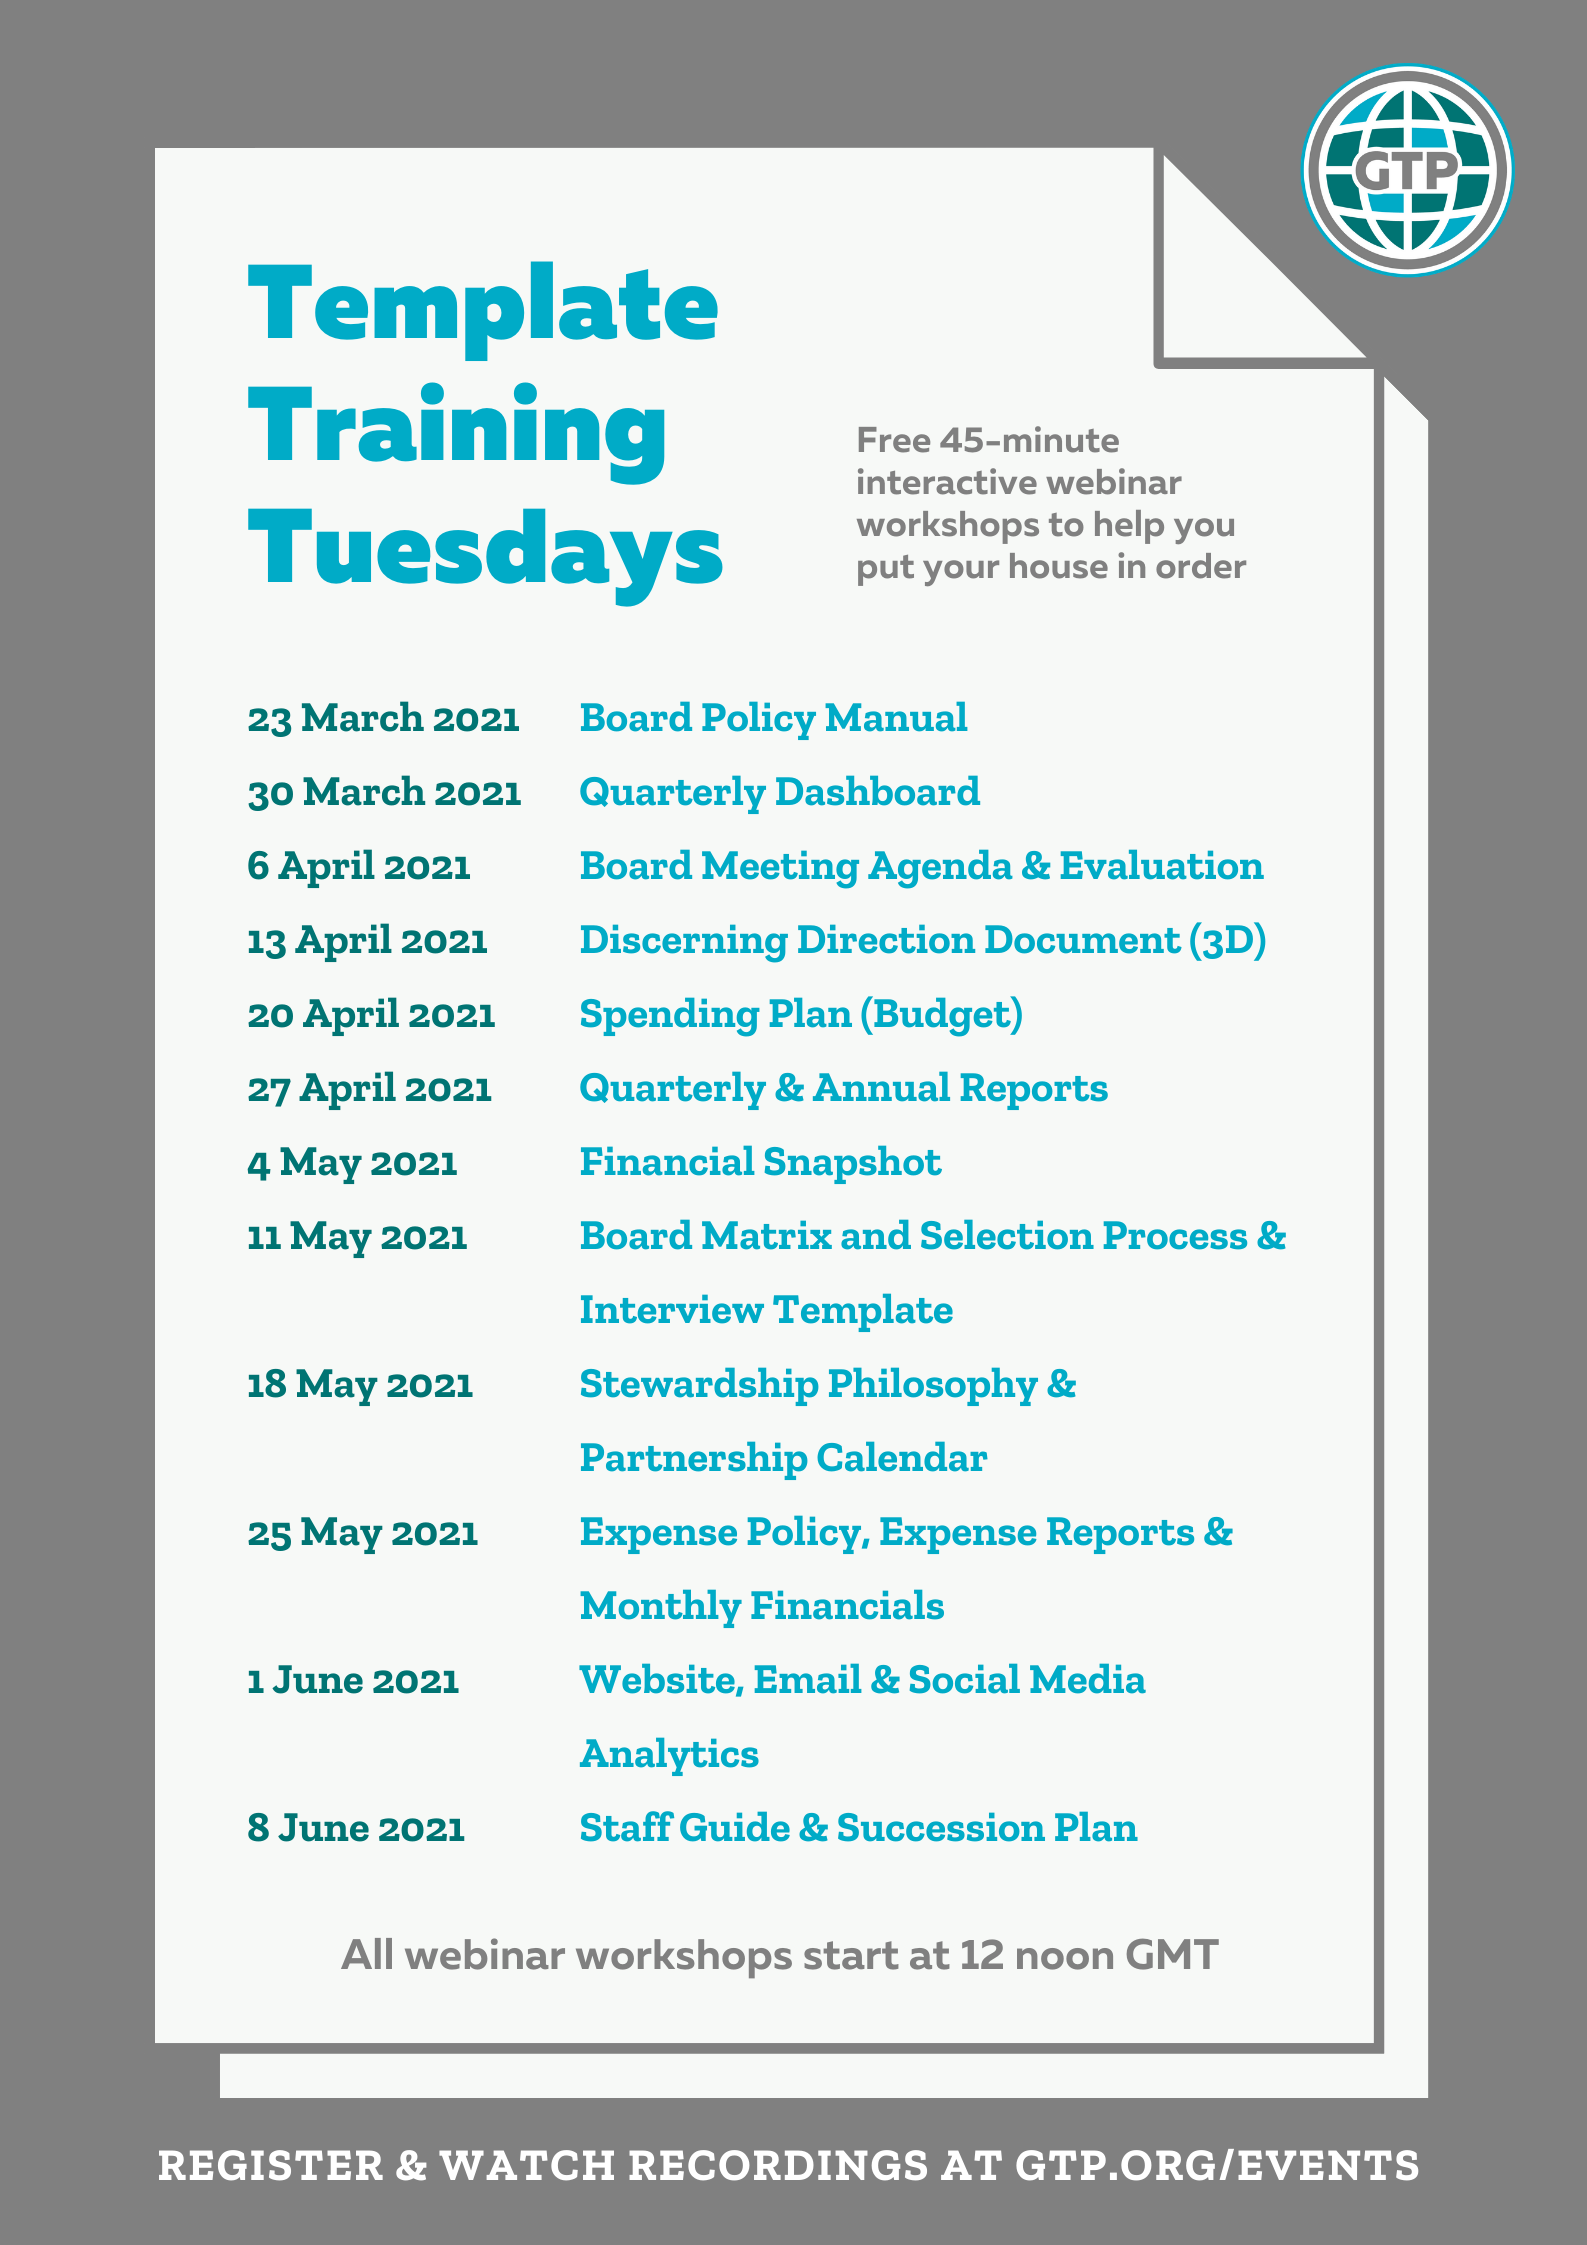 GTP Template Training Tuesdays Poster